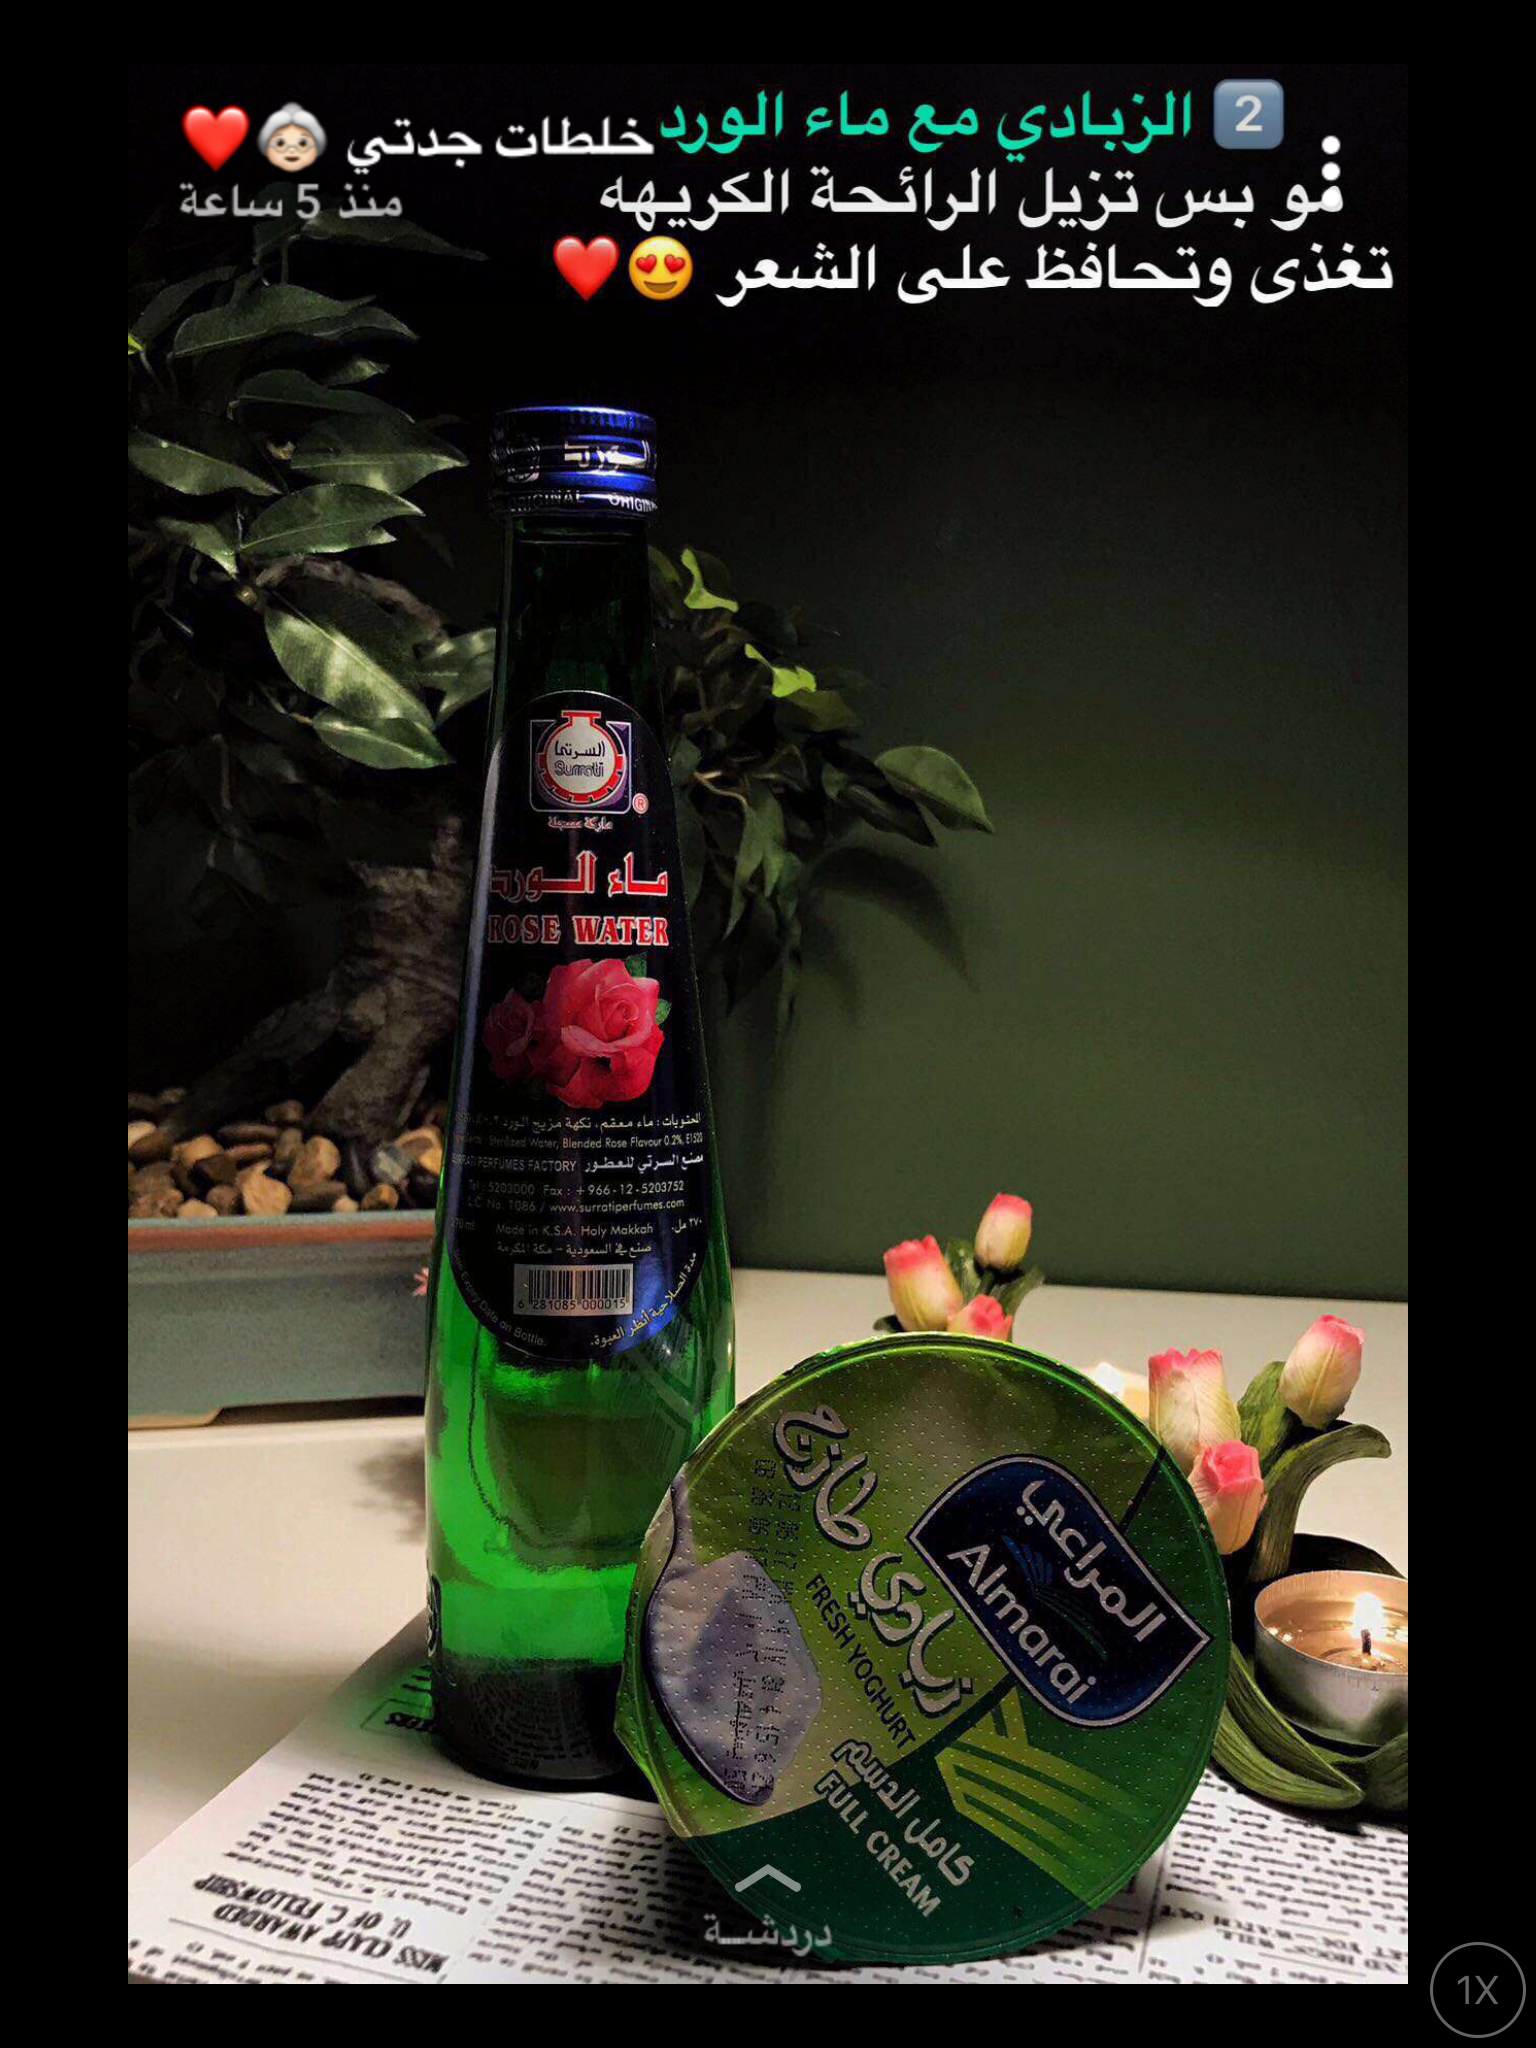 Pin By جود Mf On خلطات Dish Soap Bottle Soap Bottle Dish Soap